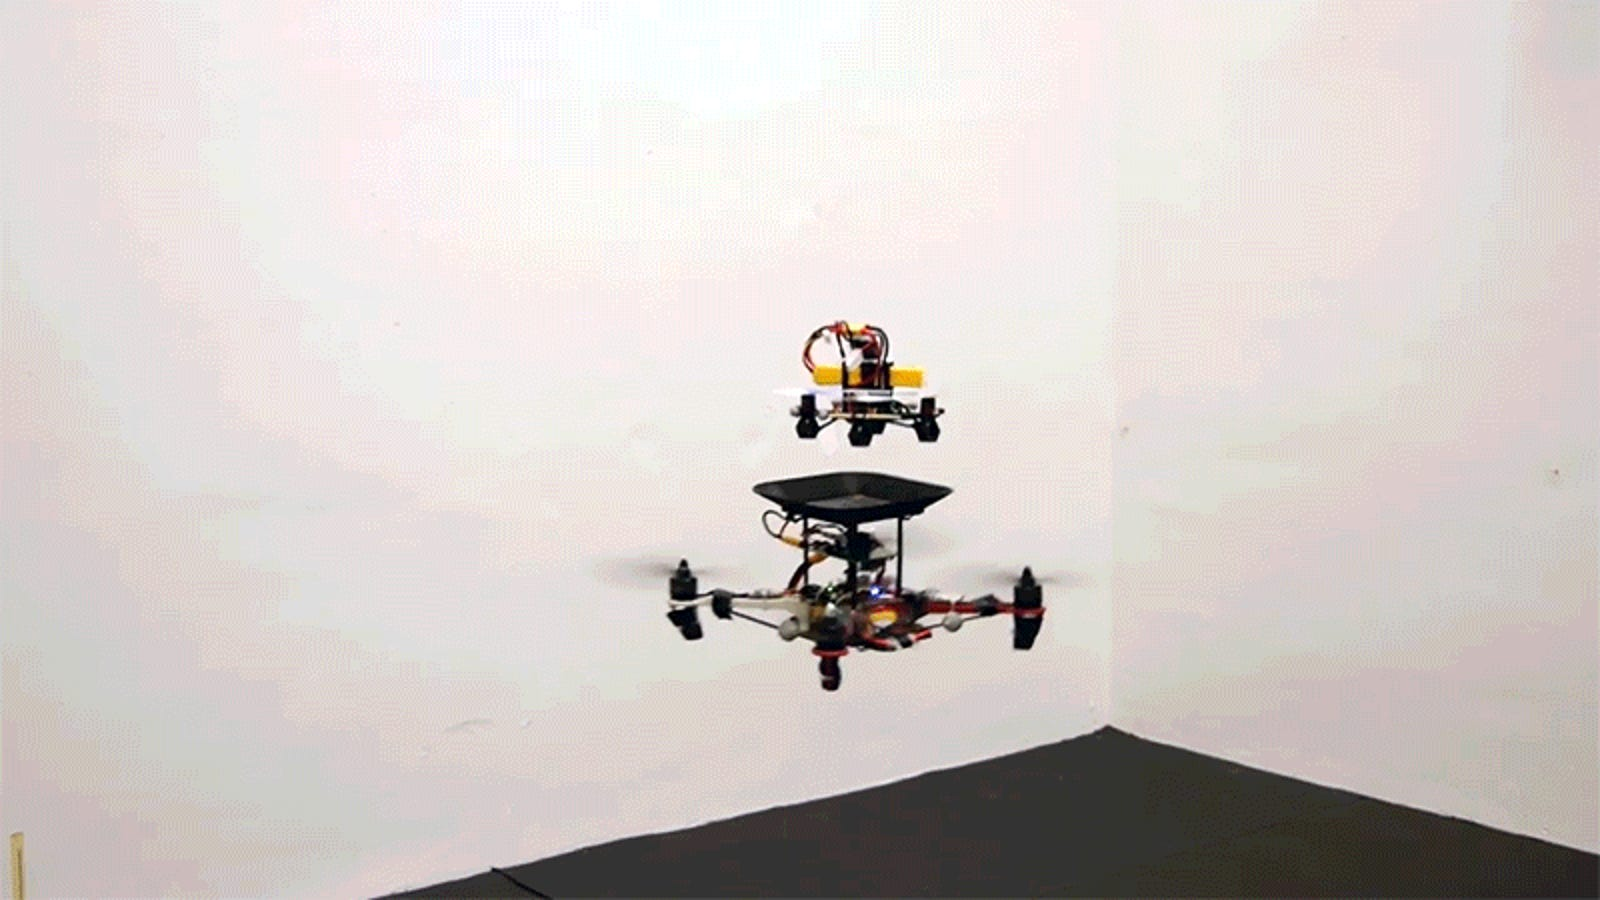 Flying Replacement Batteries Could Massively Boost a Drone's Flight Time